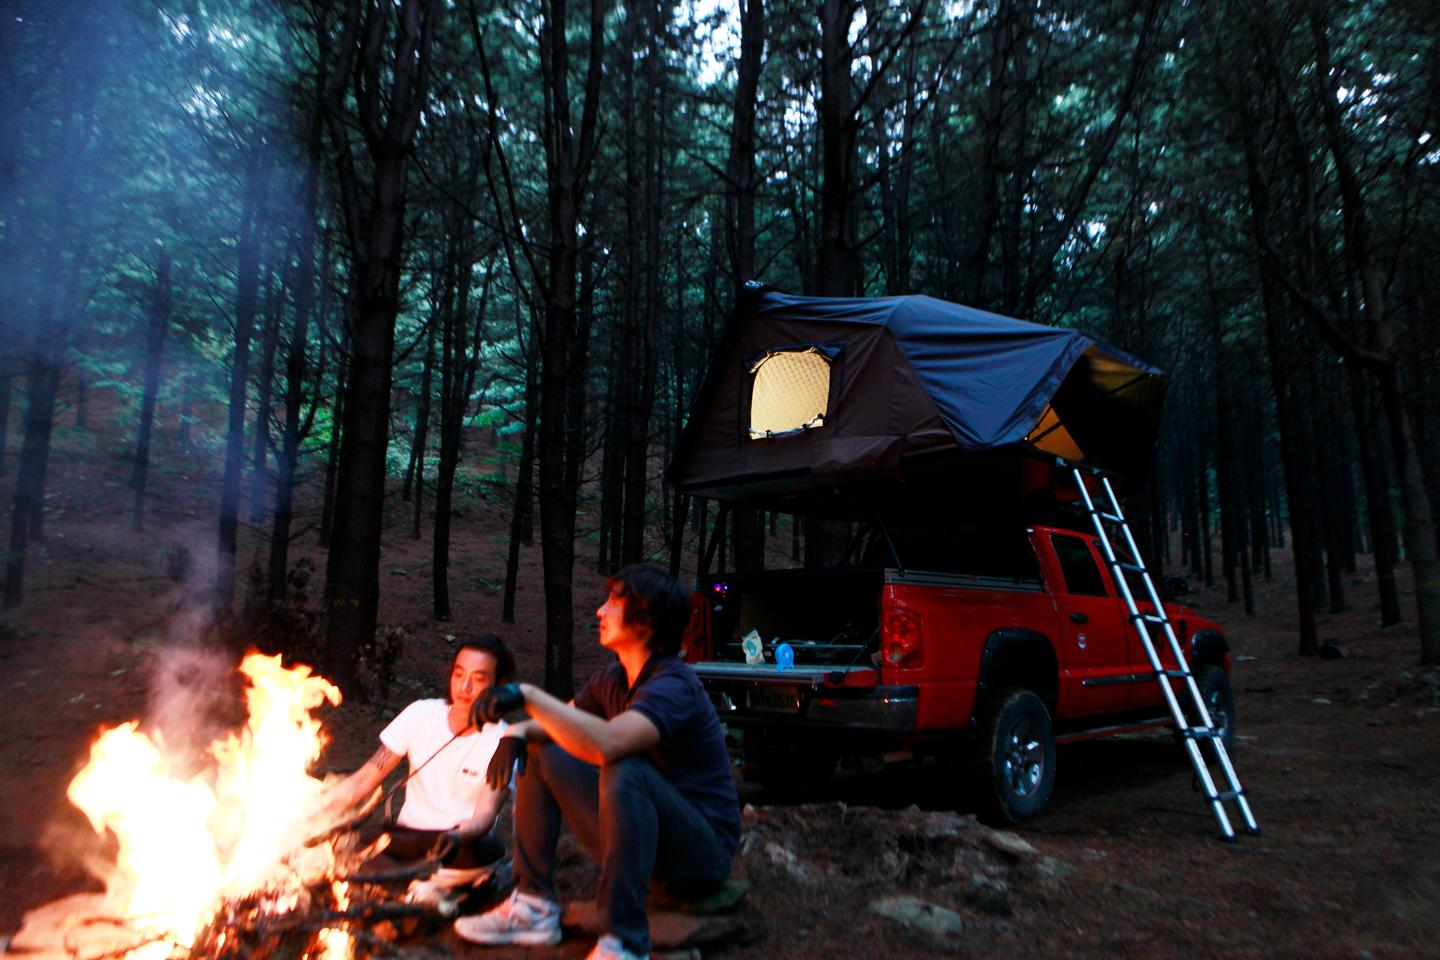 Skycamp Hard Shell Roof Top Tent Expands To Sleep The Family